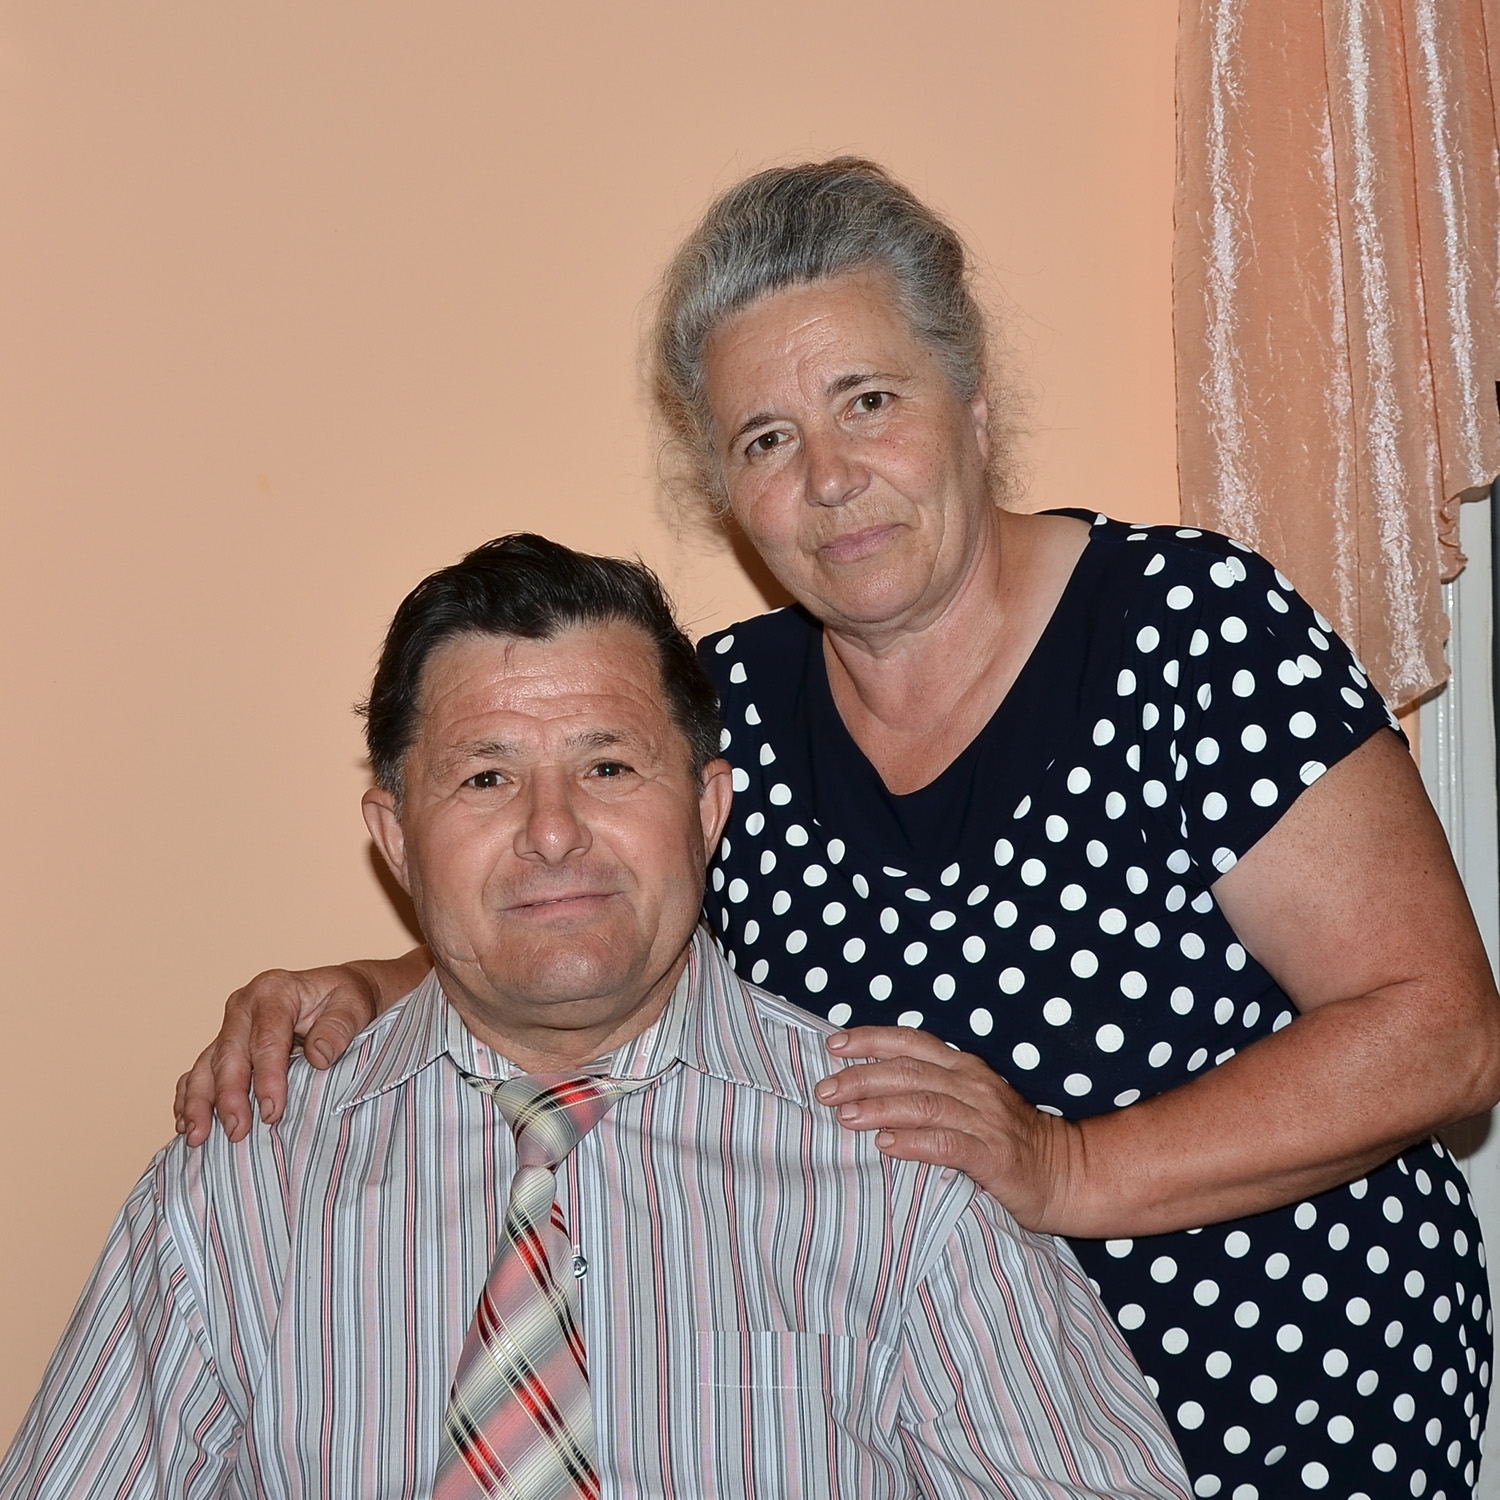 Pavel and his wife Larissa